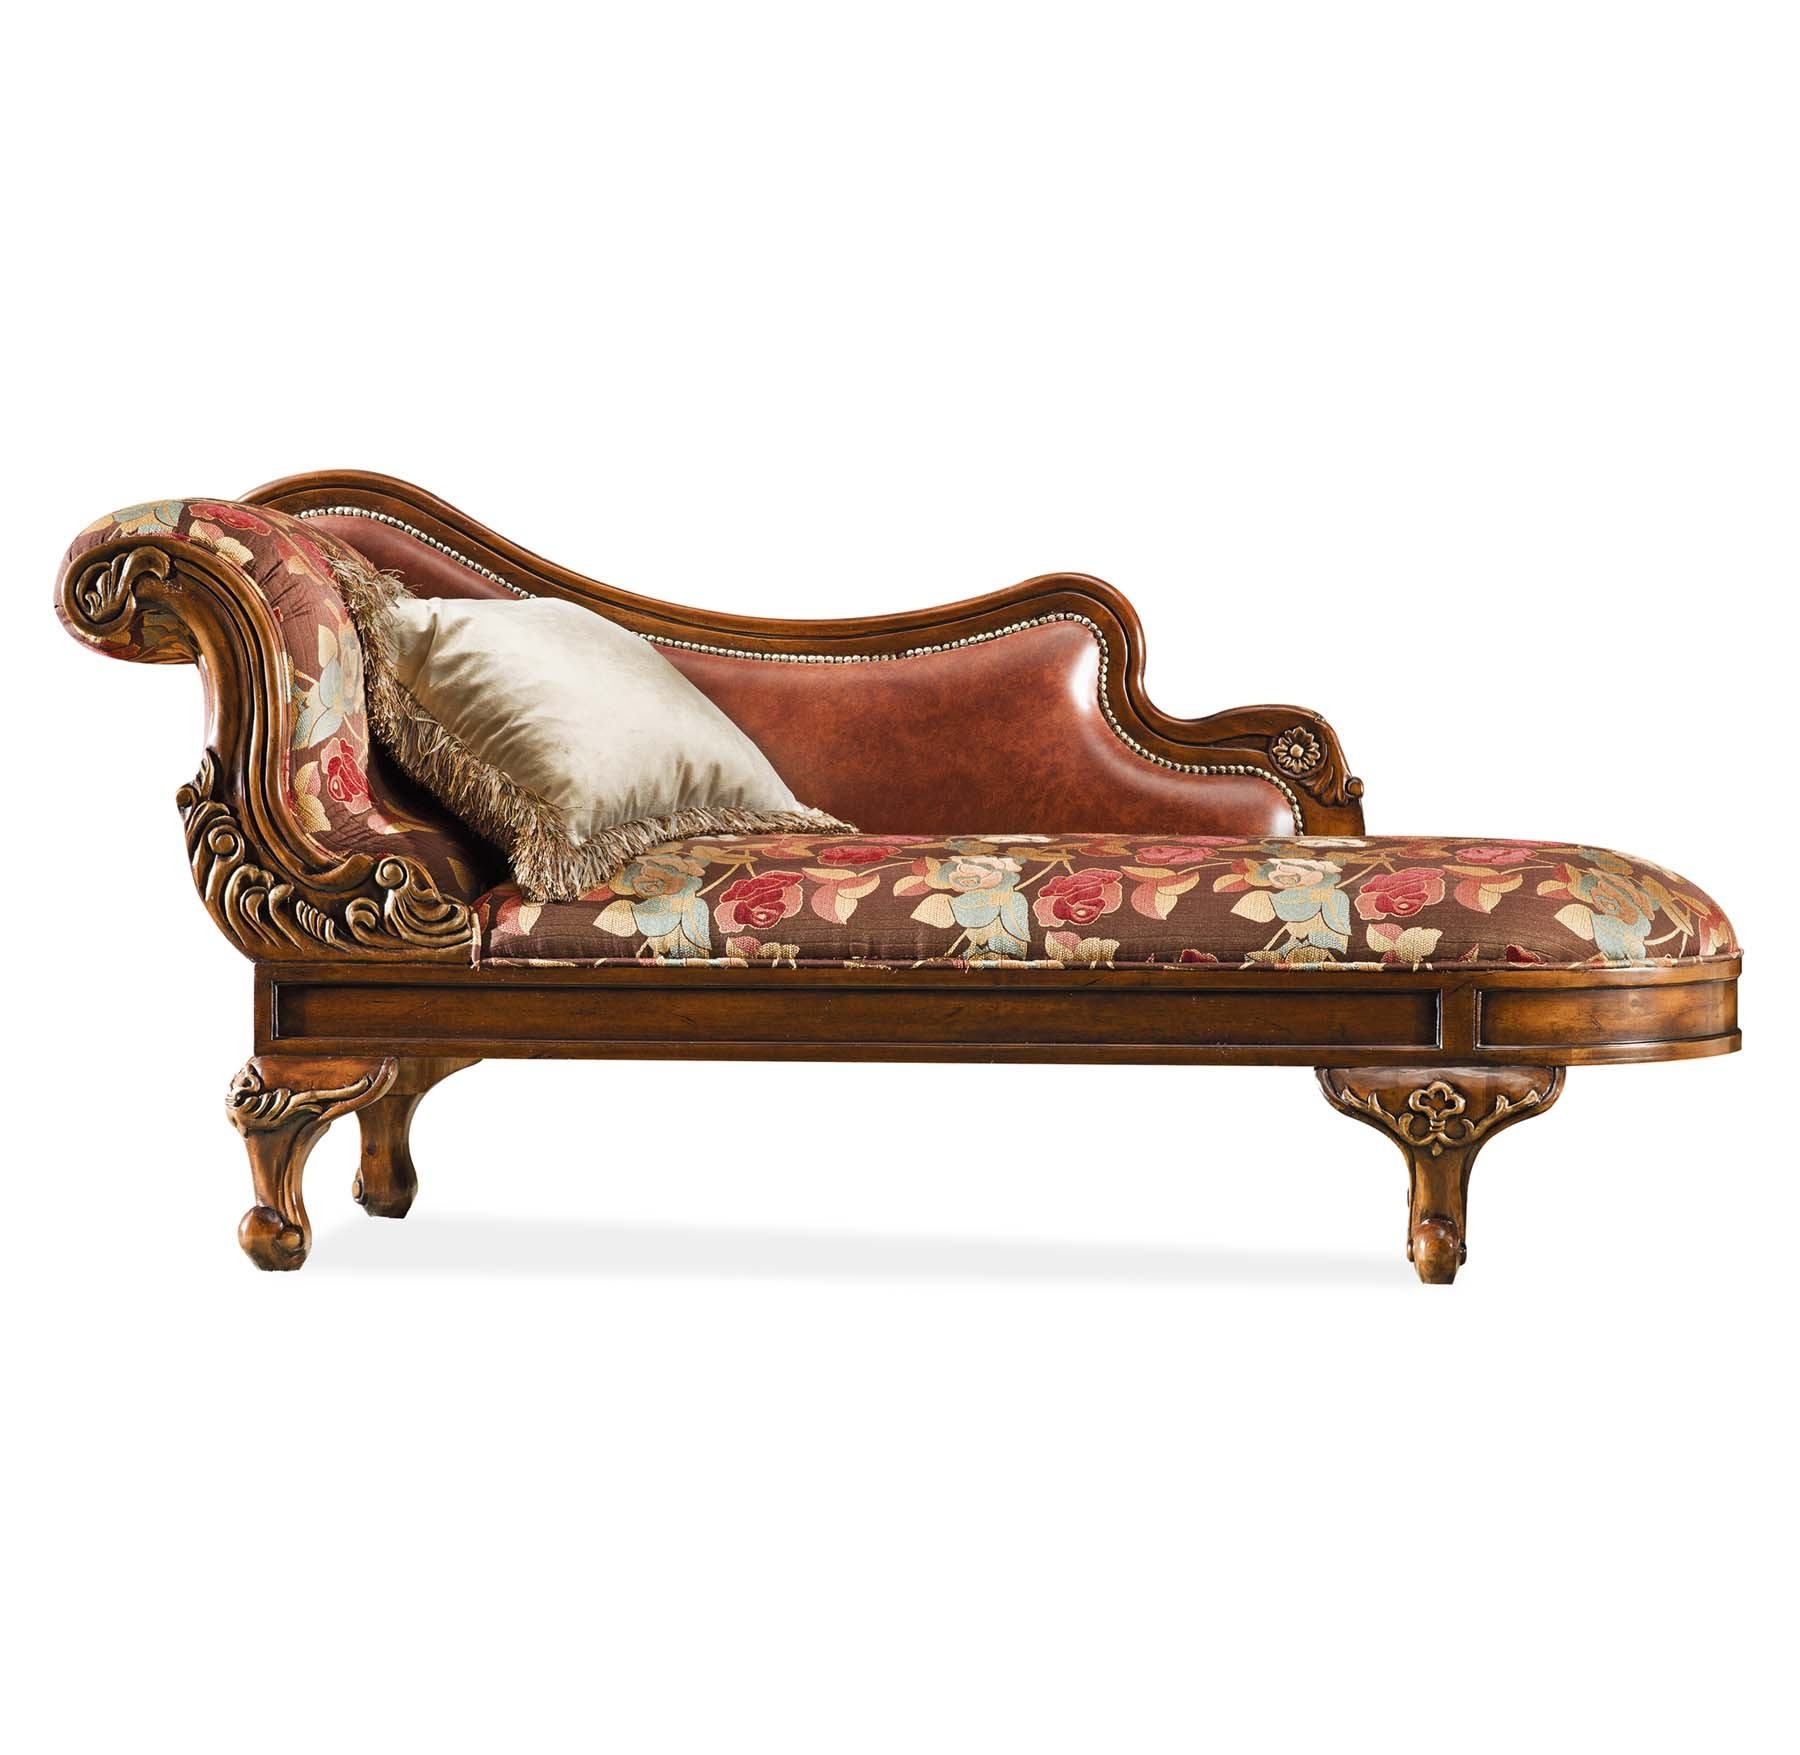 Belmont chaise lounge sofa chaise accent items for Chaise lounge couch